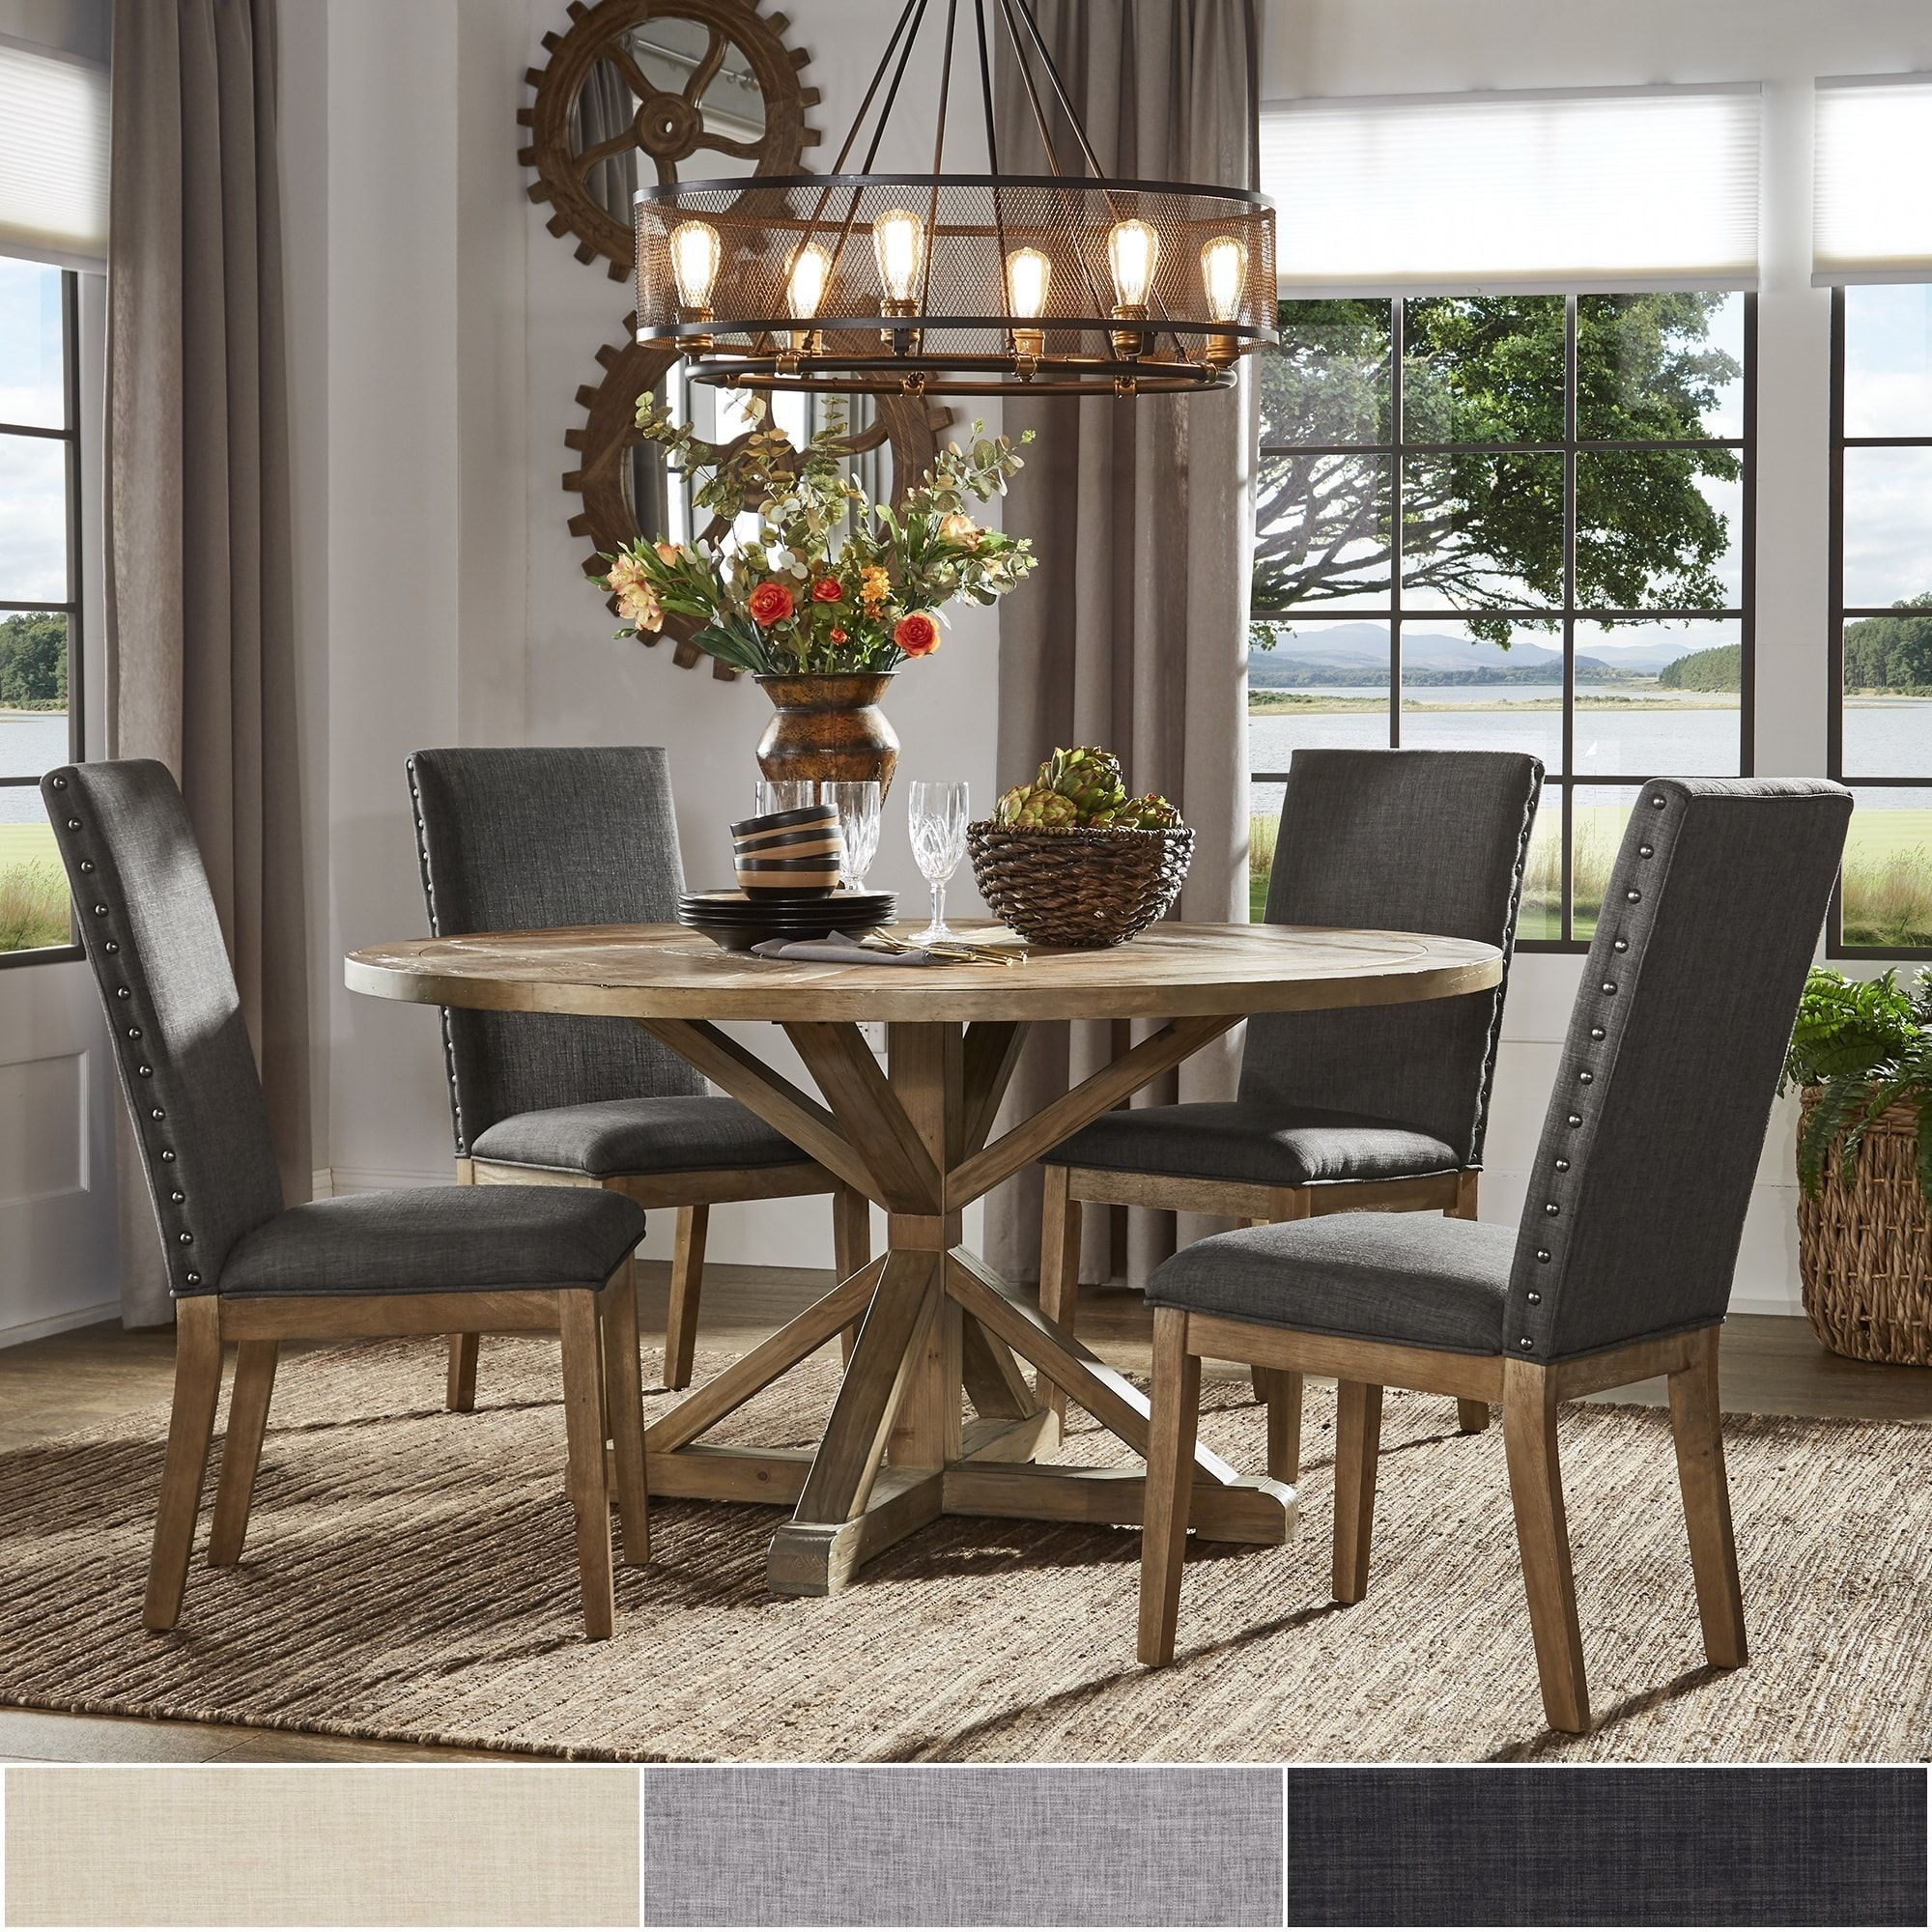 Benchwright Rustic X Base Round Pine Wood Dining Set With Nail